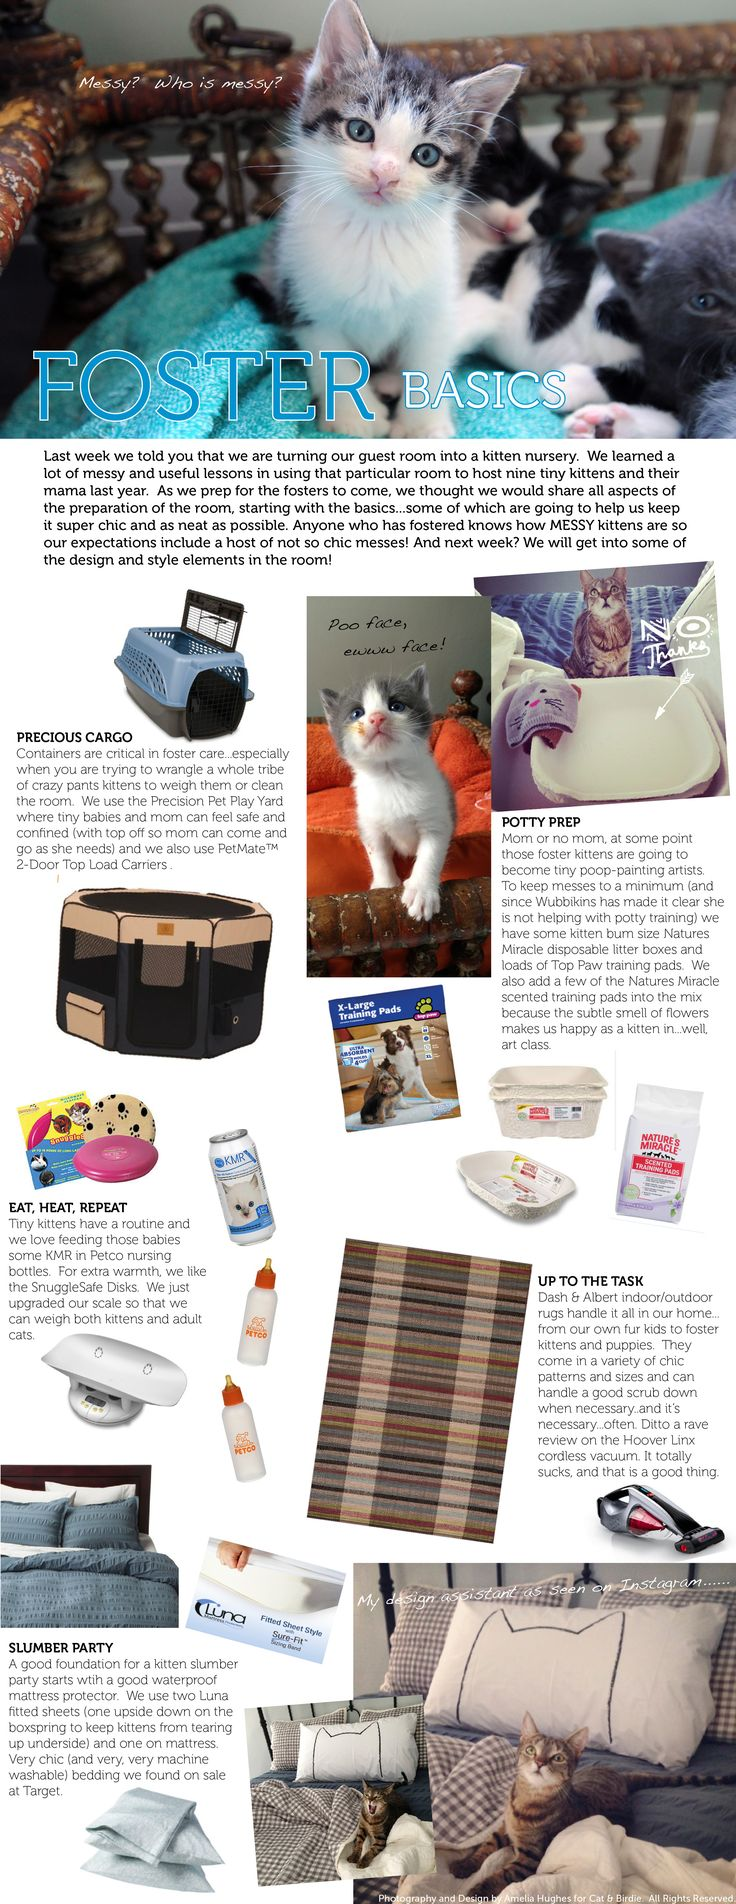 Room To Grow - Kitten Foster Care Essentials : Cat & Birdie #HelpingAnimals {03.11.2014}